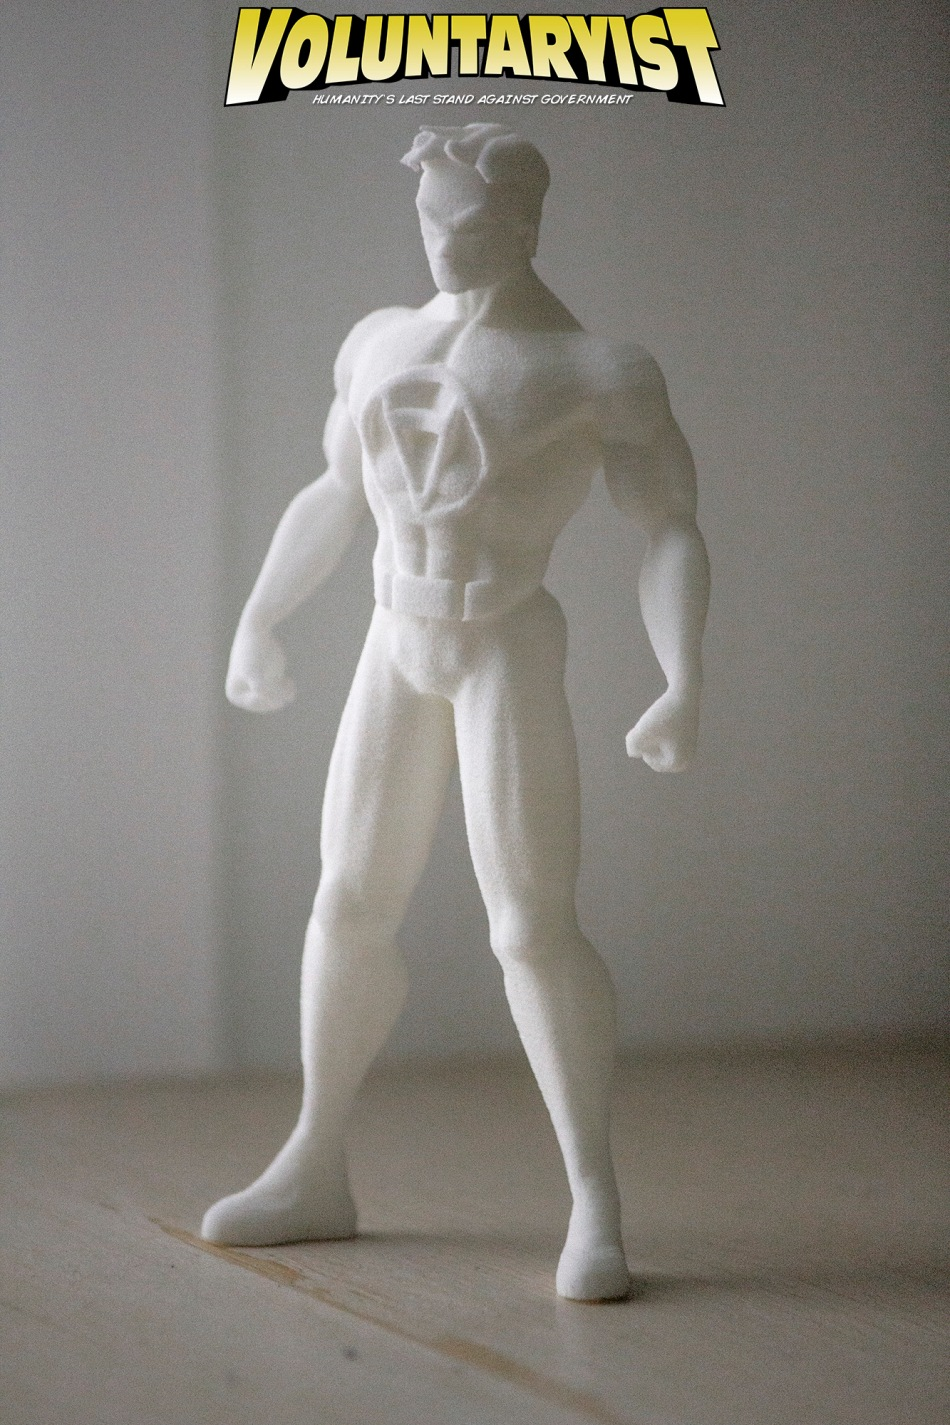 Voluntaryist Shapeways Prototype 1